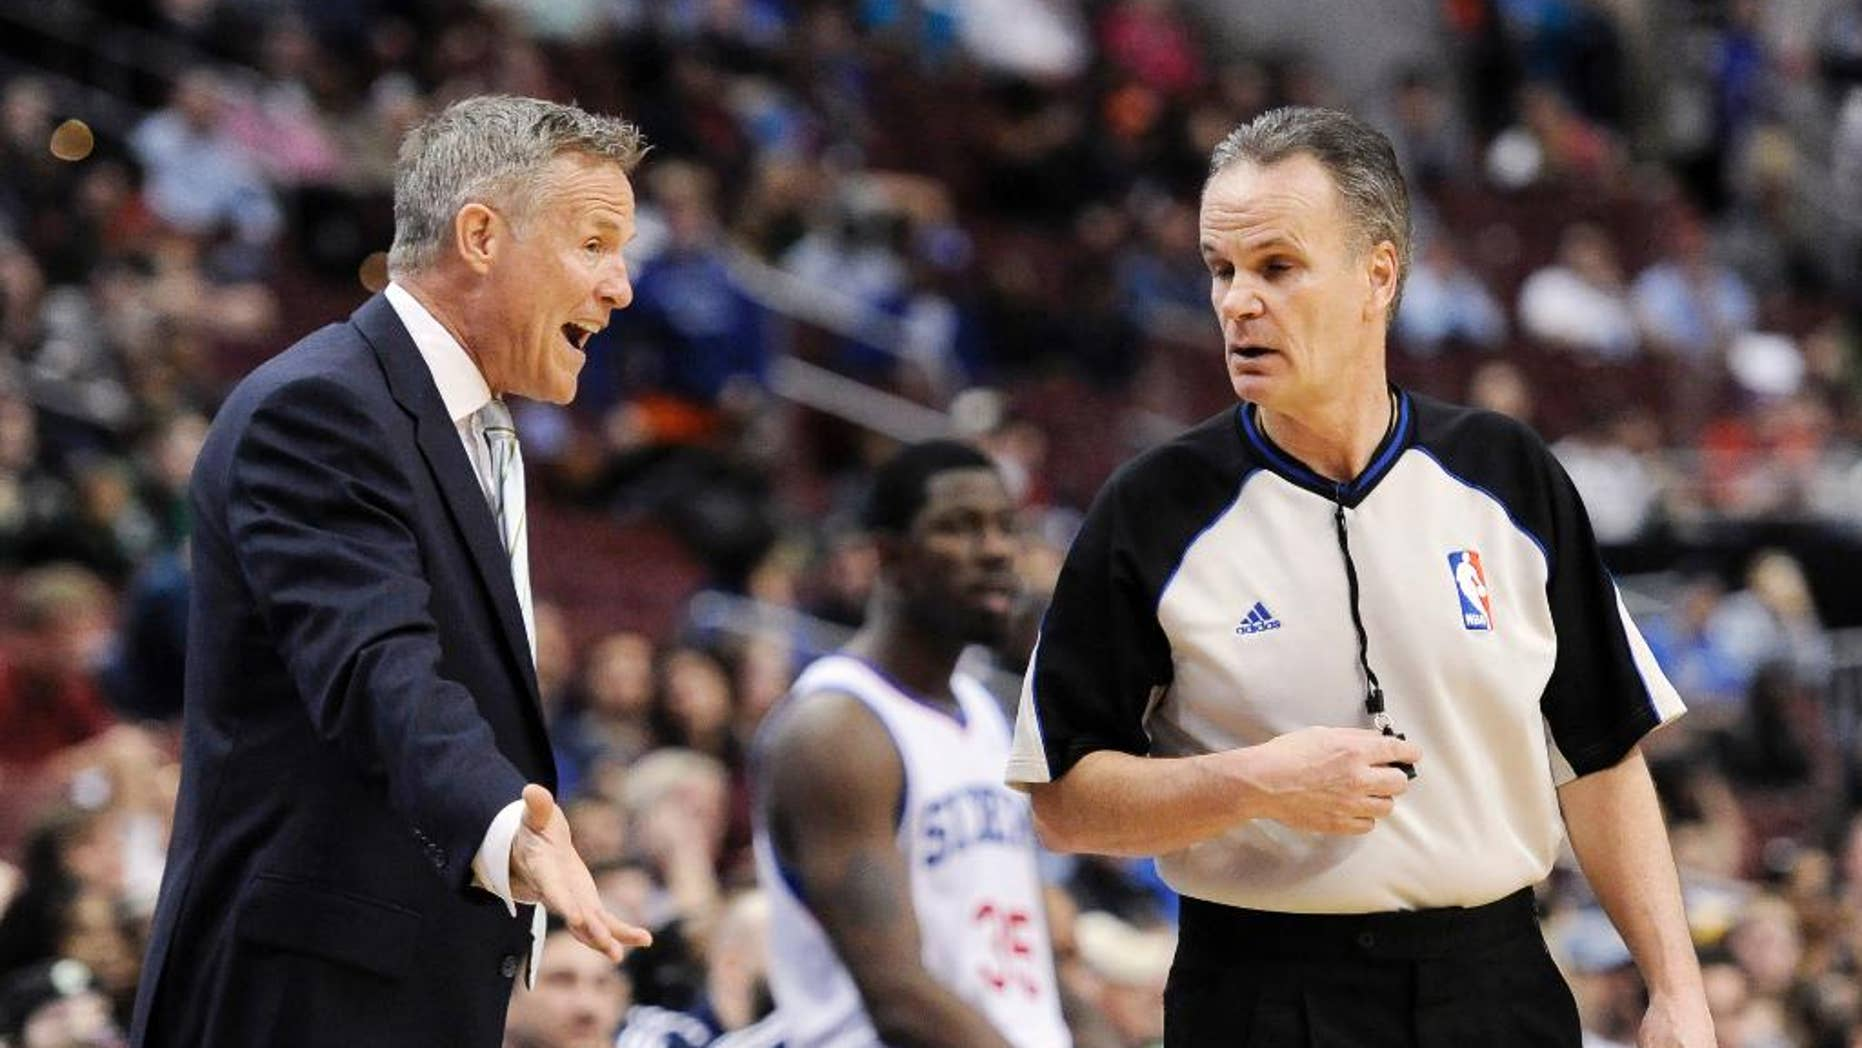 Philadelphia 76ers head coach Brett Brown argues a with official Mike Callahan during the second half of an NBA basketball game on Monday, April 14, 2014, in Philadelphia. The 76ers won 113-108. (AP Photo/Michael Perez)